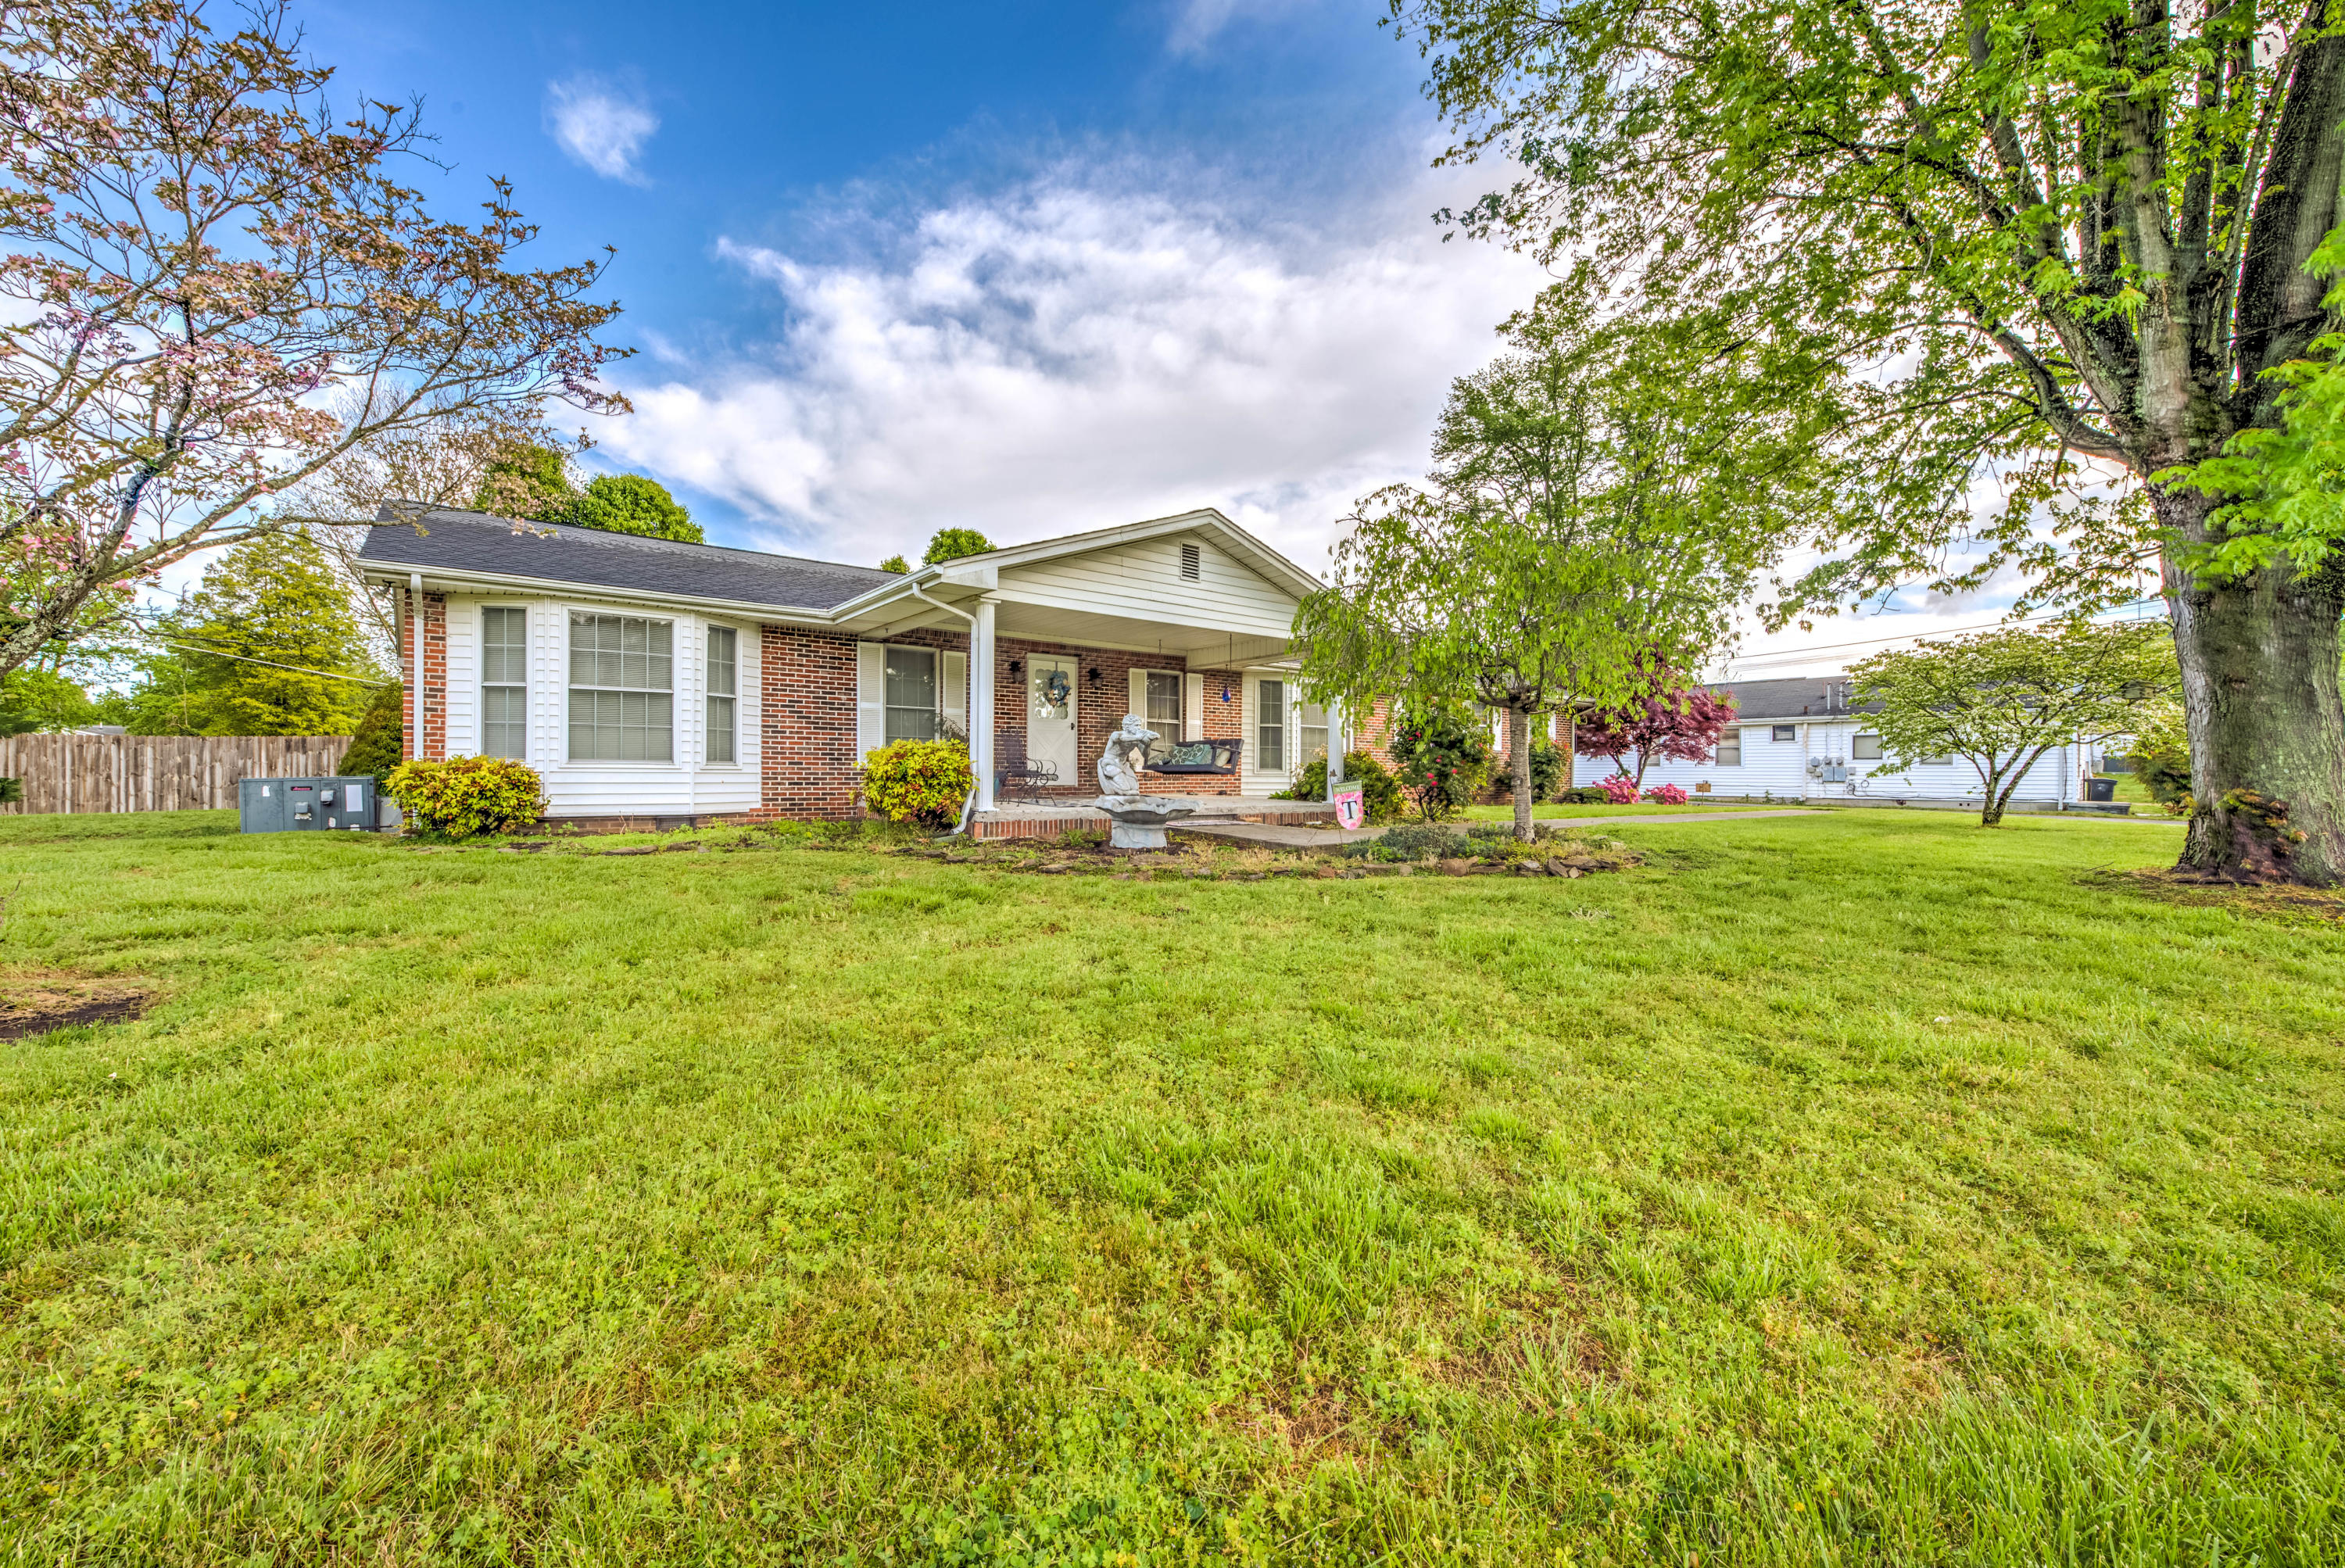 20200420225514188088000000-o Rocky Top anderson county homes for sale